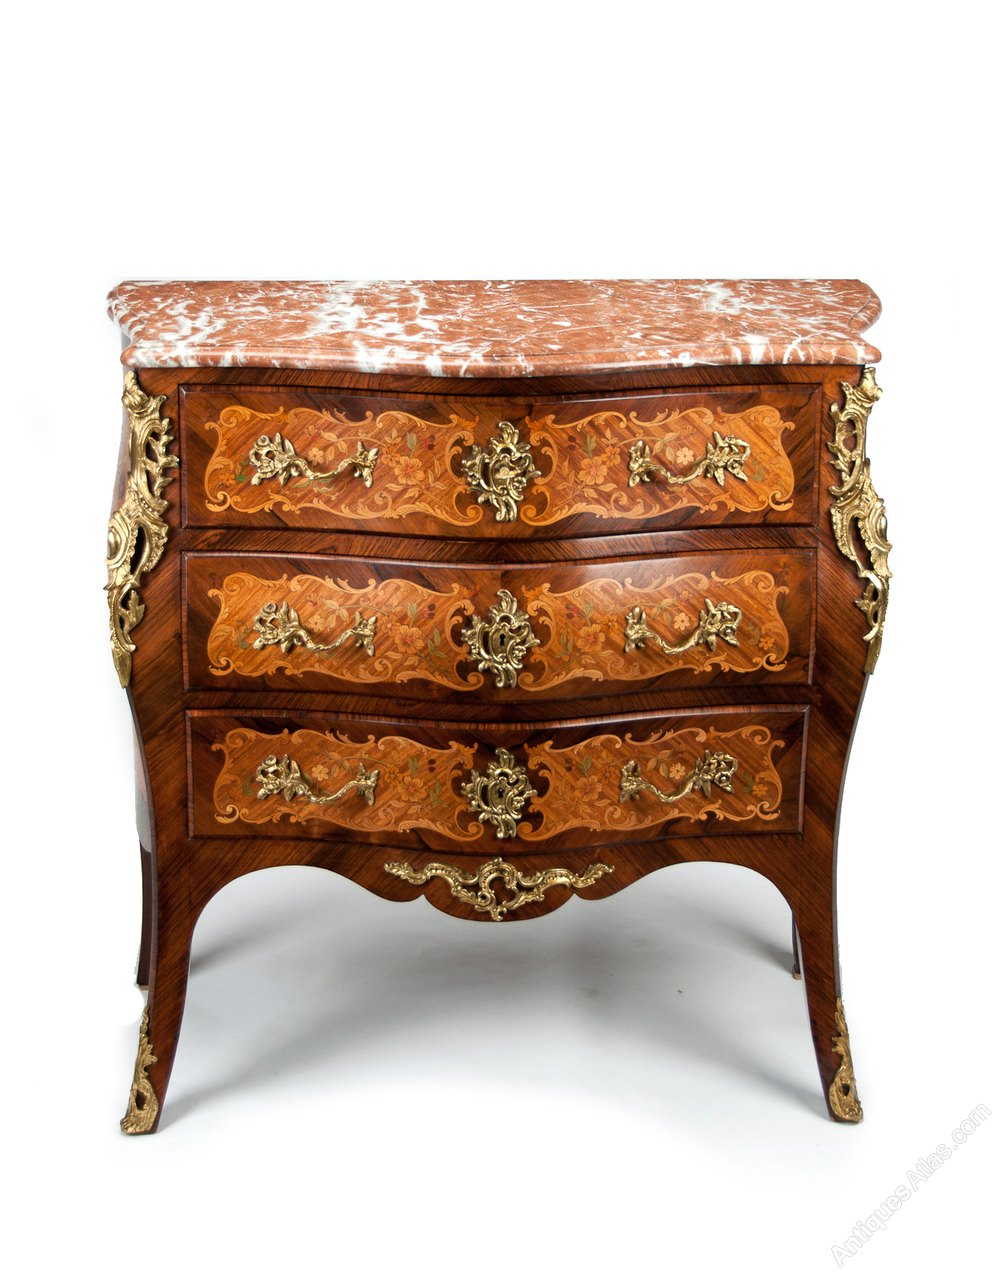 fine french louis xv style inlaid bombe commode antiques atlas. Black Bedroom Furniture Sets. Home Design Ideas